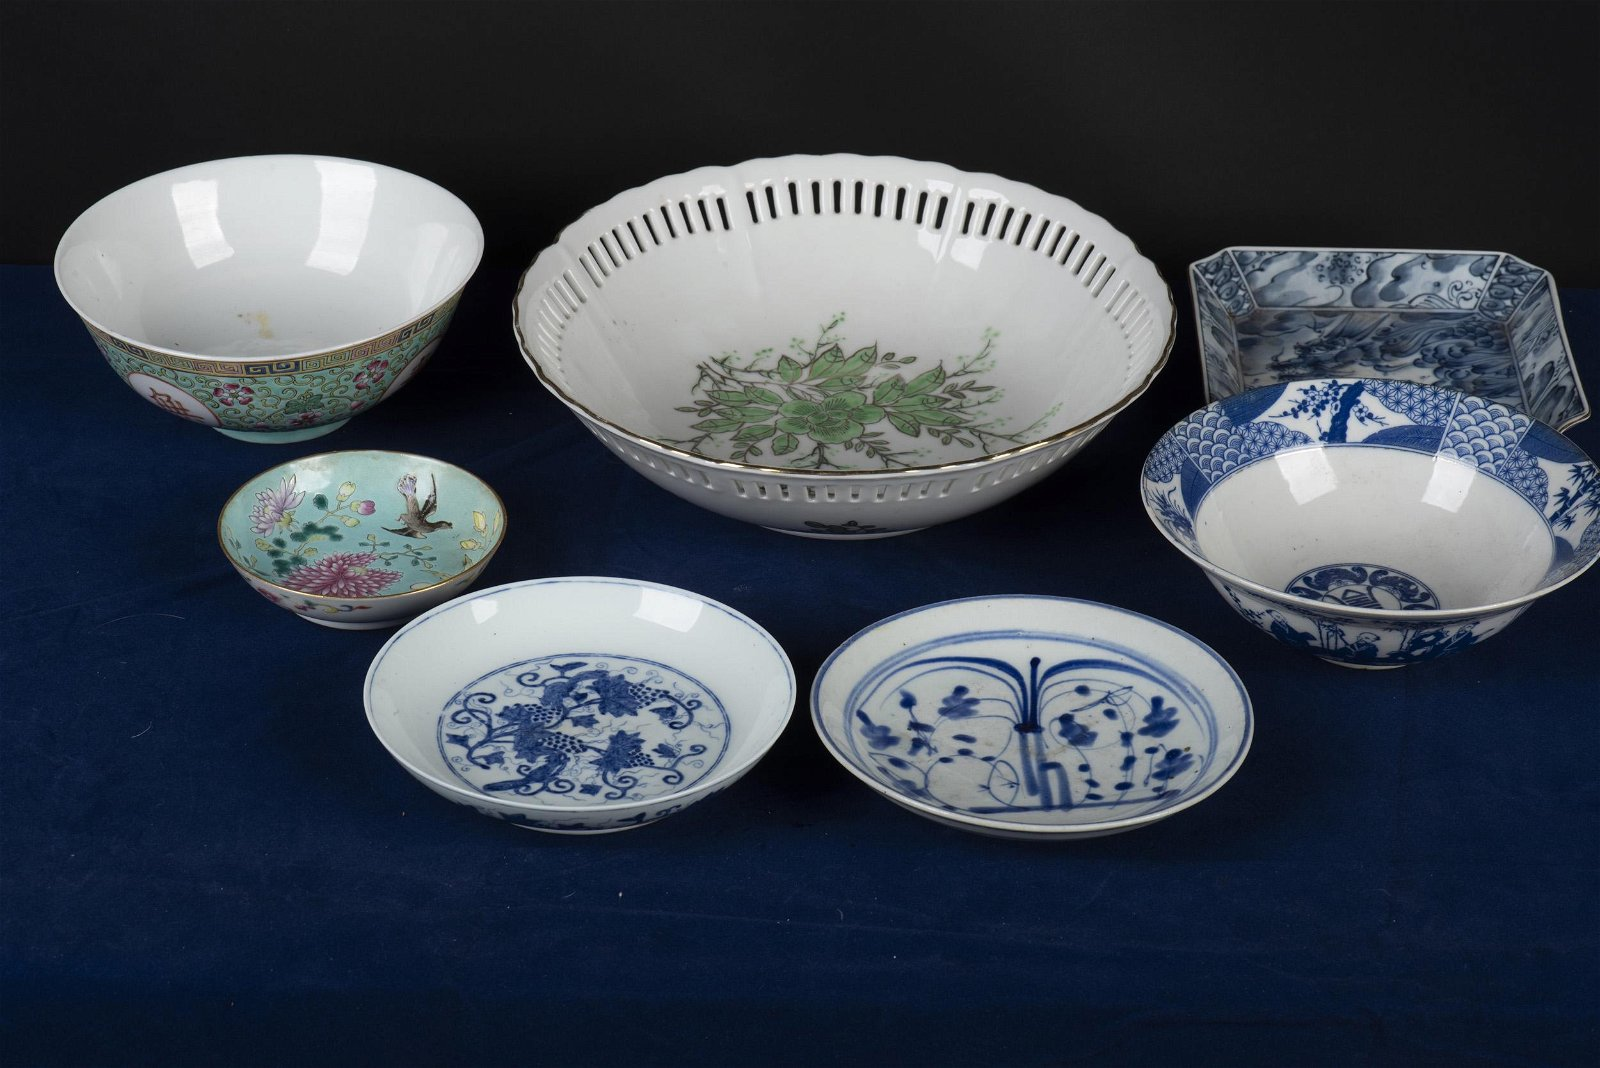 GROUP OF SEVEN VARIOUS STYLE PORCELAIN DISHES AND BOWLS